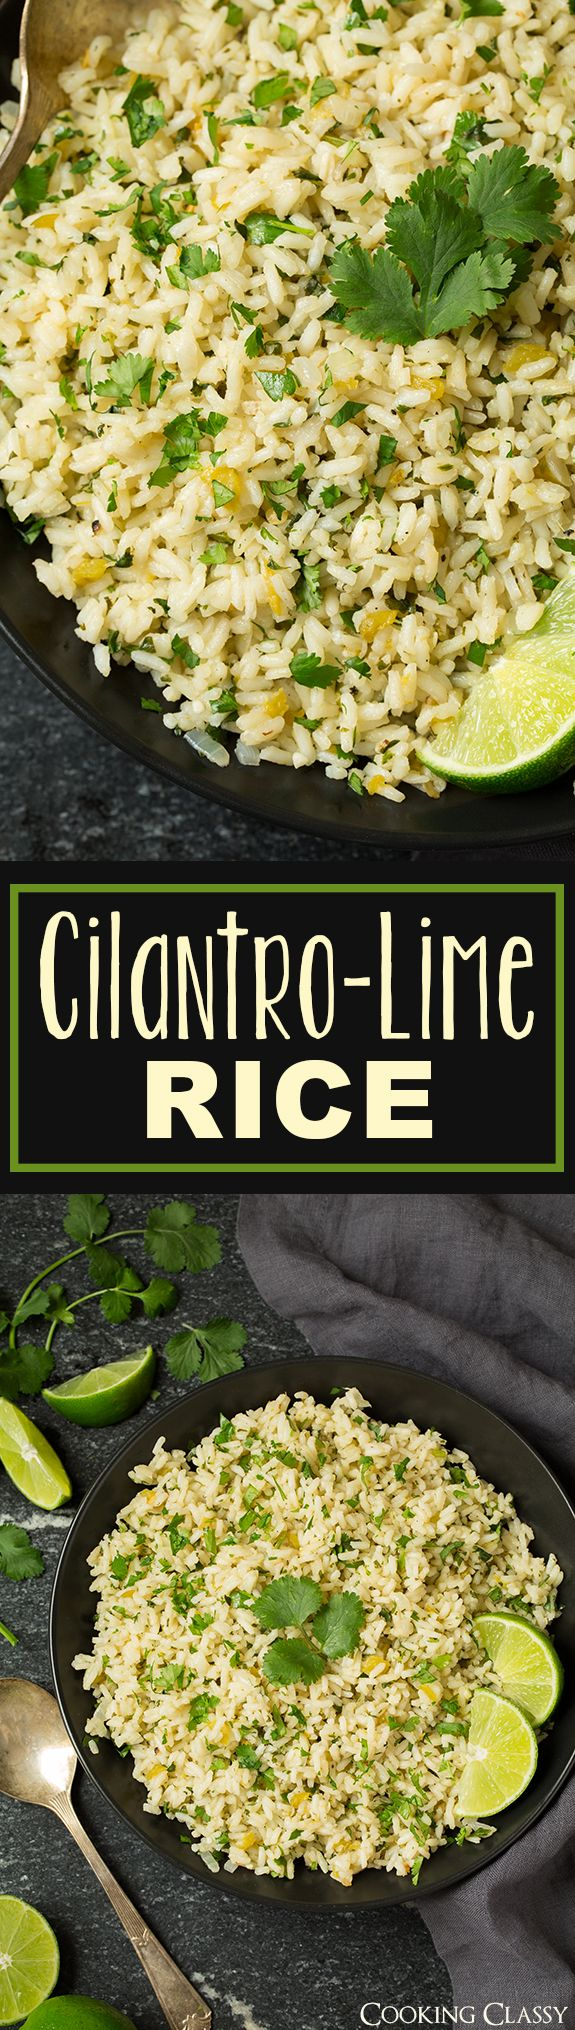 Cilantro Lime Rice – I can never get enough of this stuff! I crave it all the time! Perfect side for just about any Mexican or